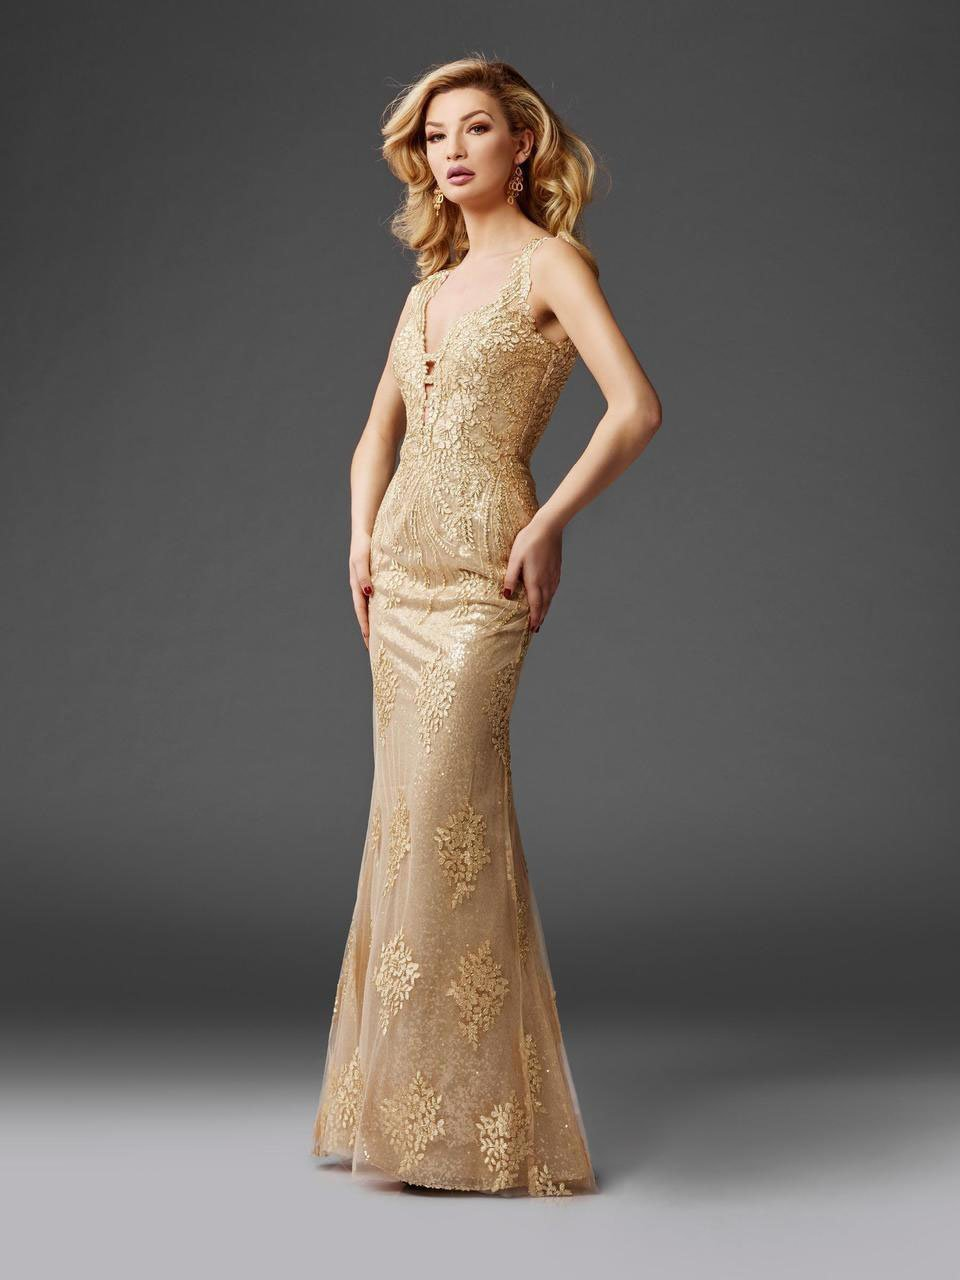 Clarisse - 4961 Embellished Deep V-neck Sheath Dress in Gold